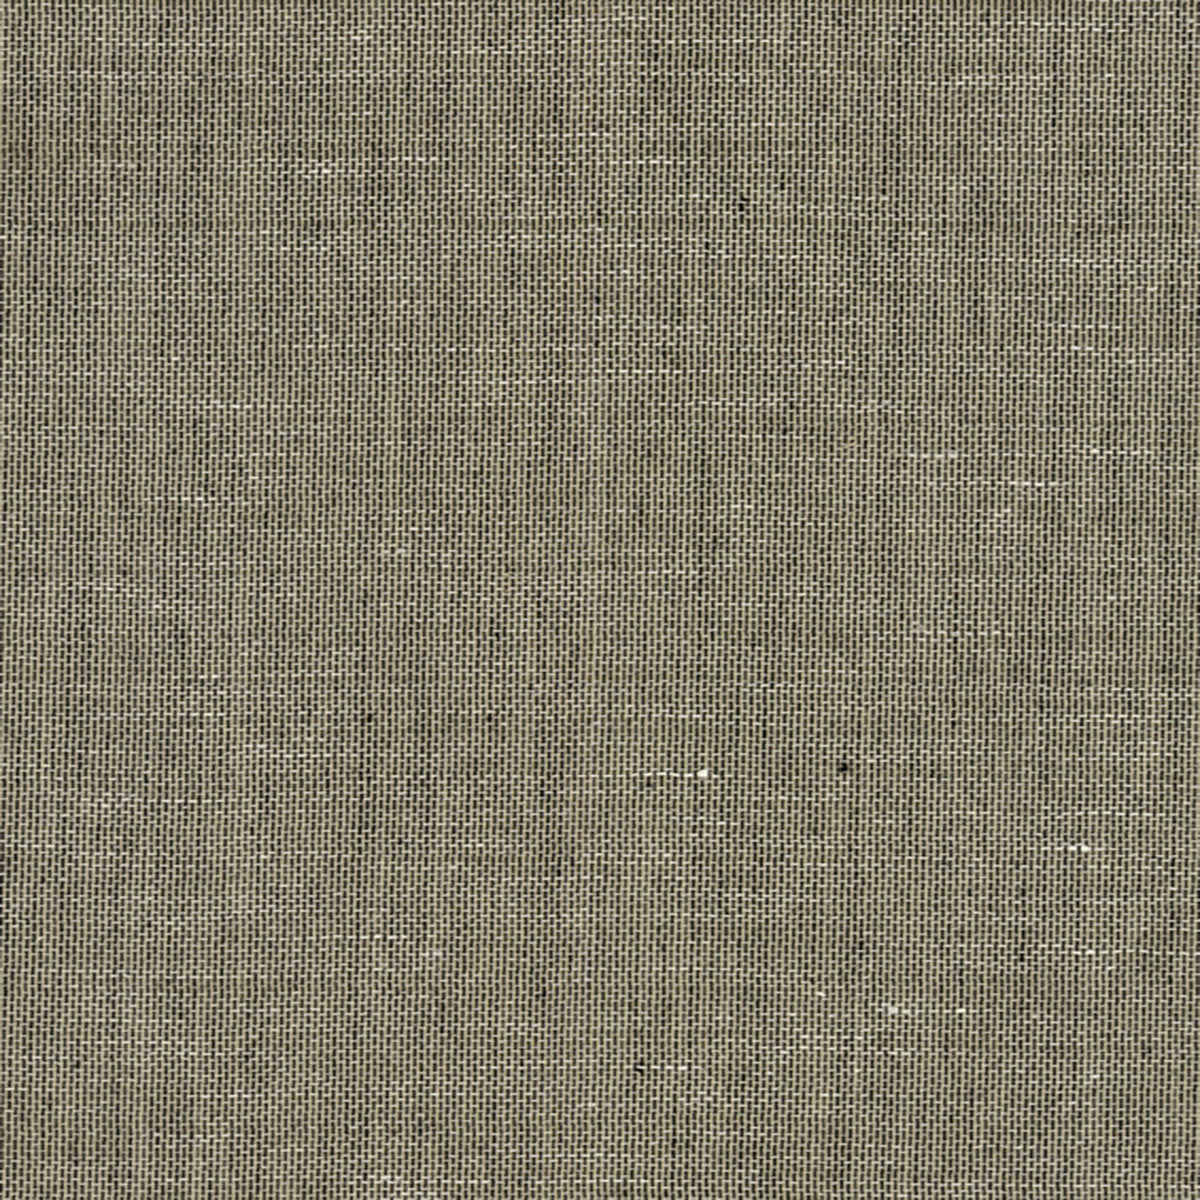 Magnolia Home Crosshatch String Wallpaper in Black